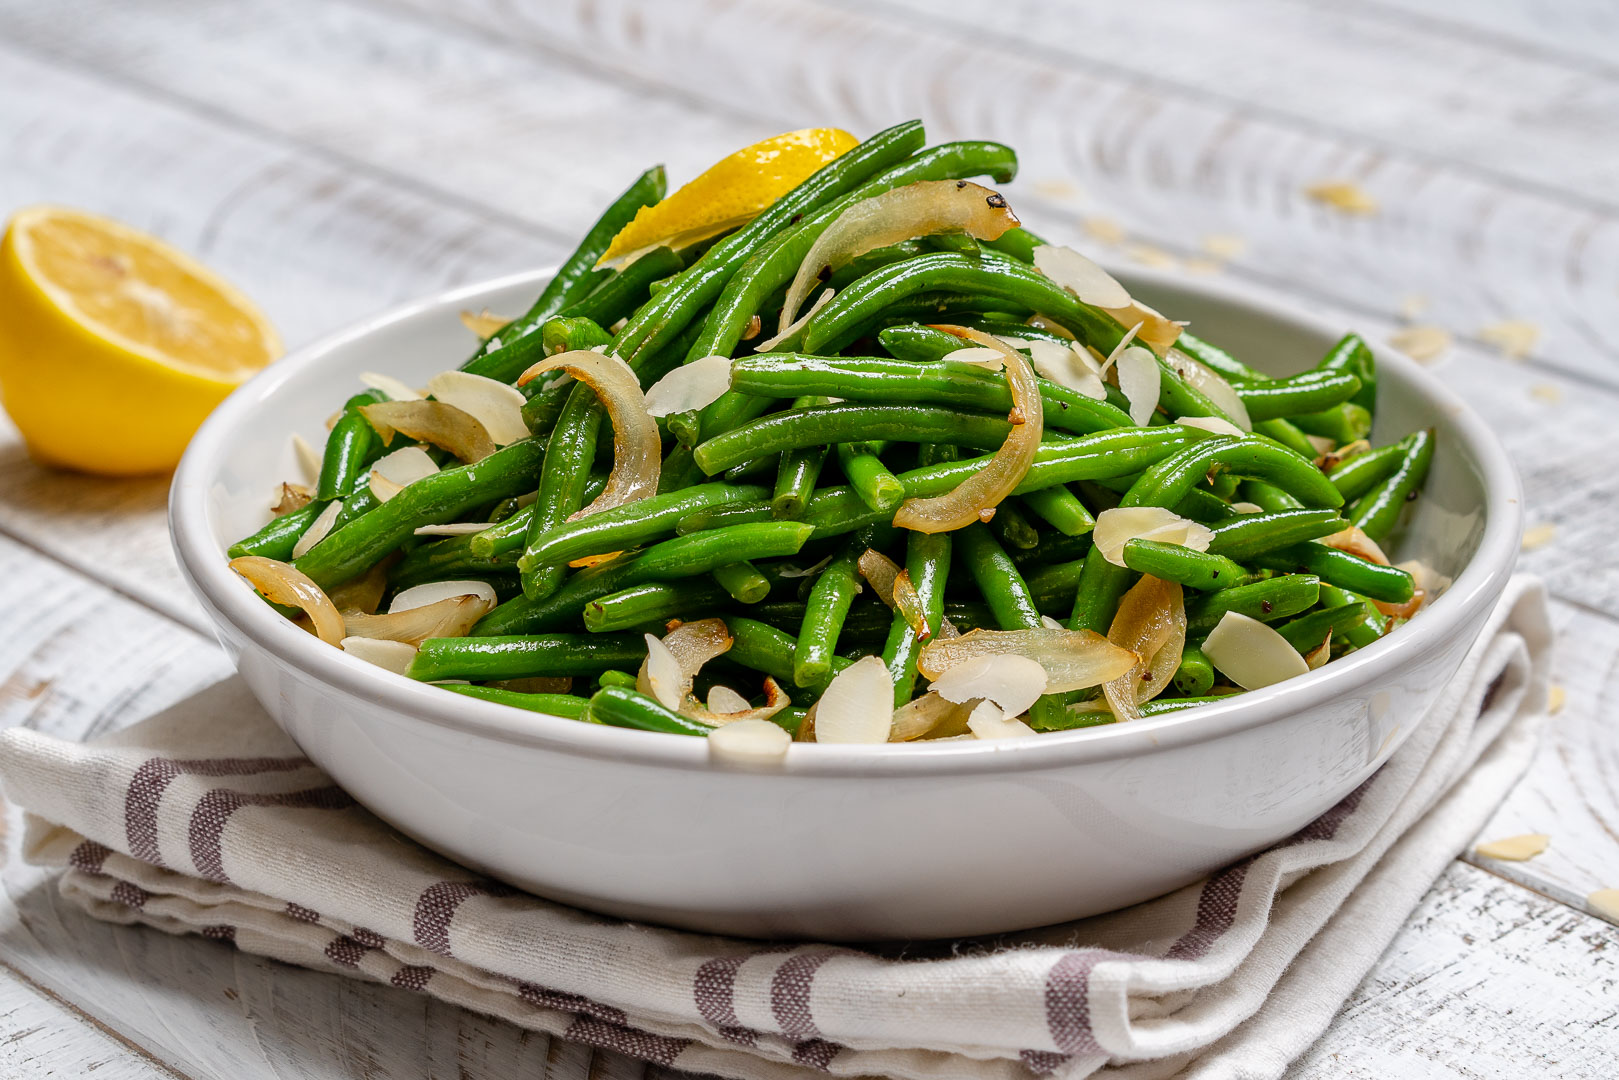 Lemony Sauteed Green Beans Ingredients